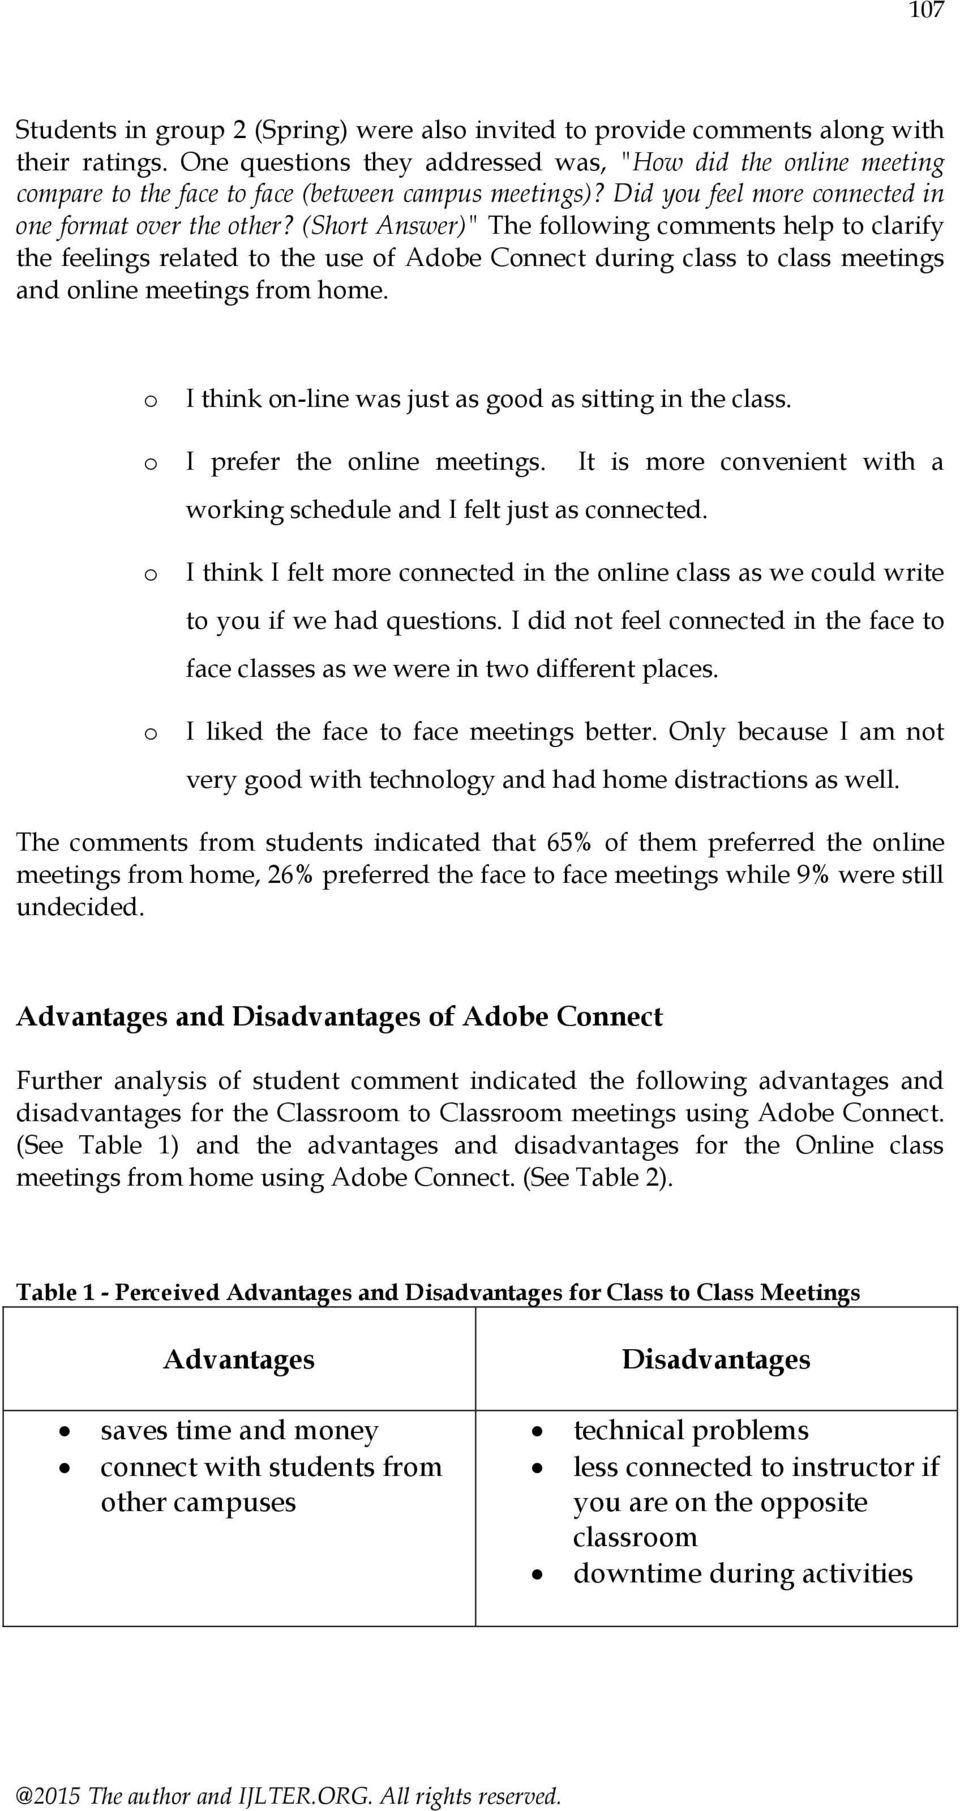 "(Short Answer)"" The following comments help to clarify the feelings related to the use of Adobe Connect during class to class meetings and online meetings from home."